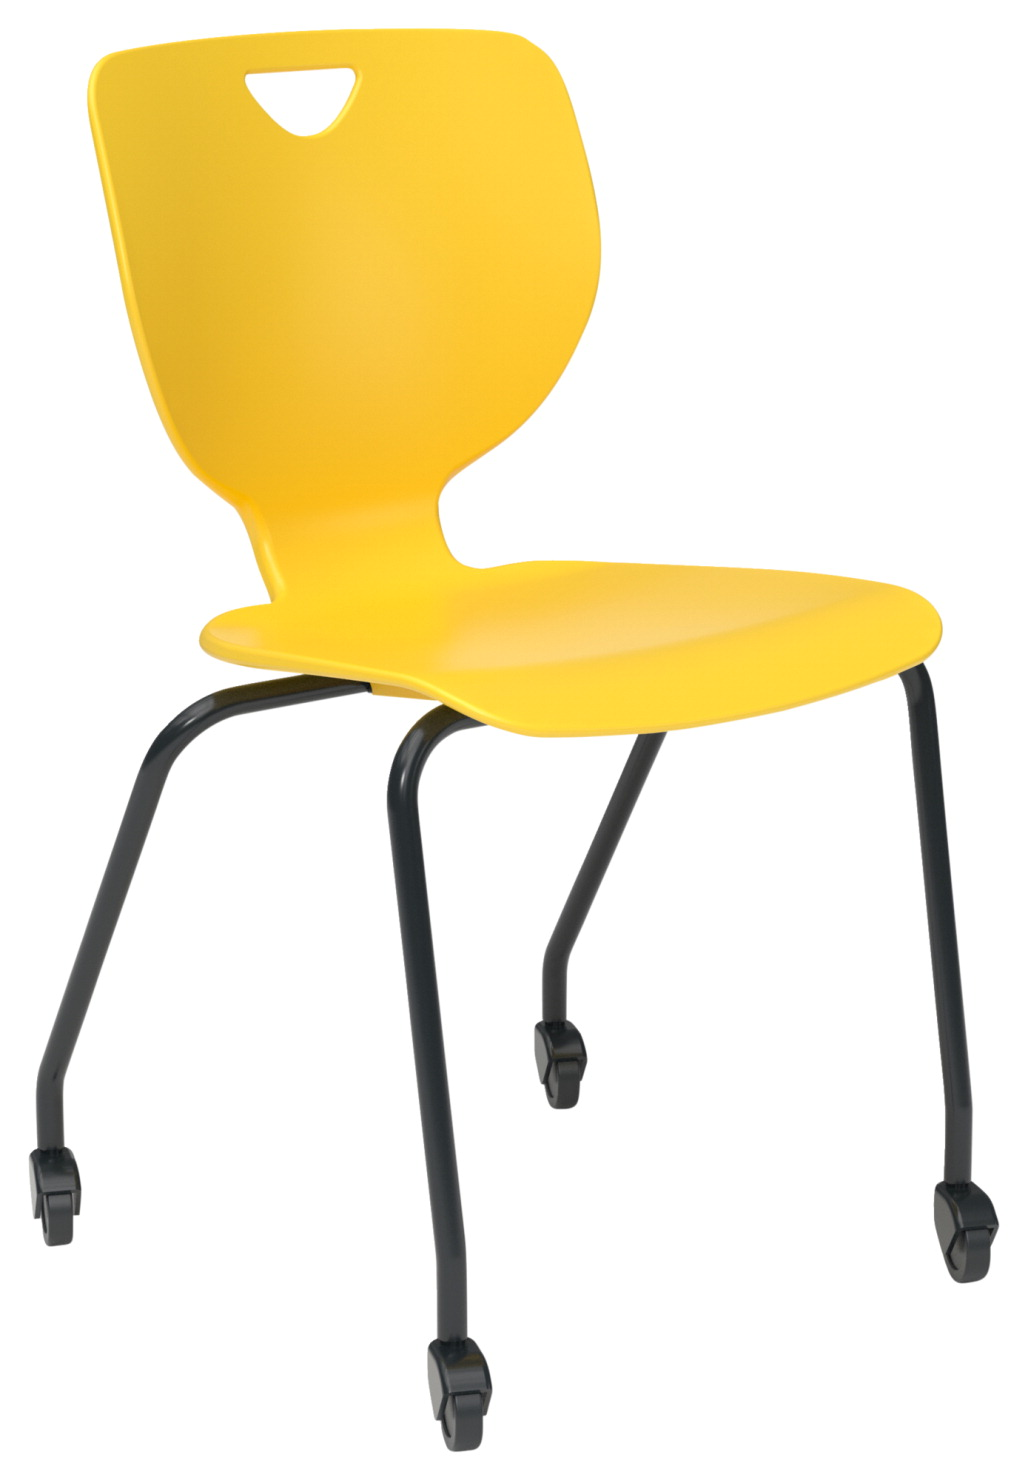 Classroom Select Inspo Round Tube Four Leg Chair, 20 A+ Inch Seat Height, Various Options